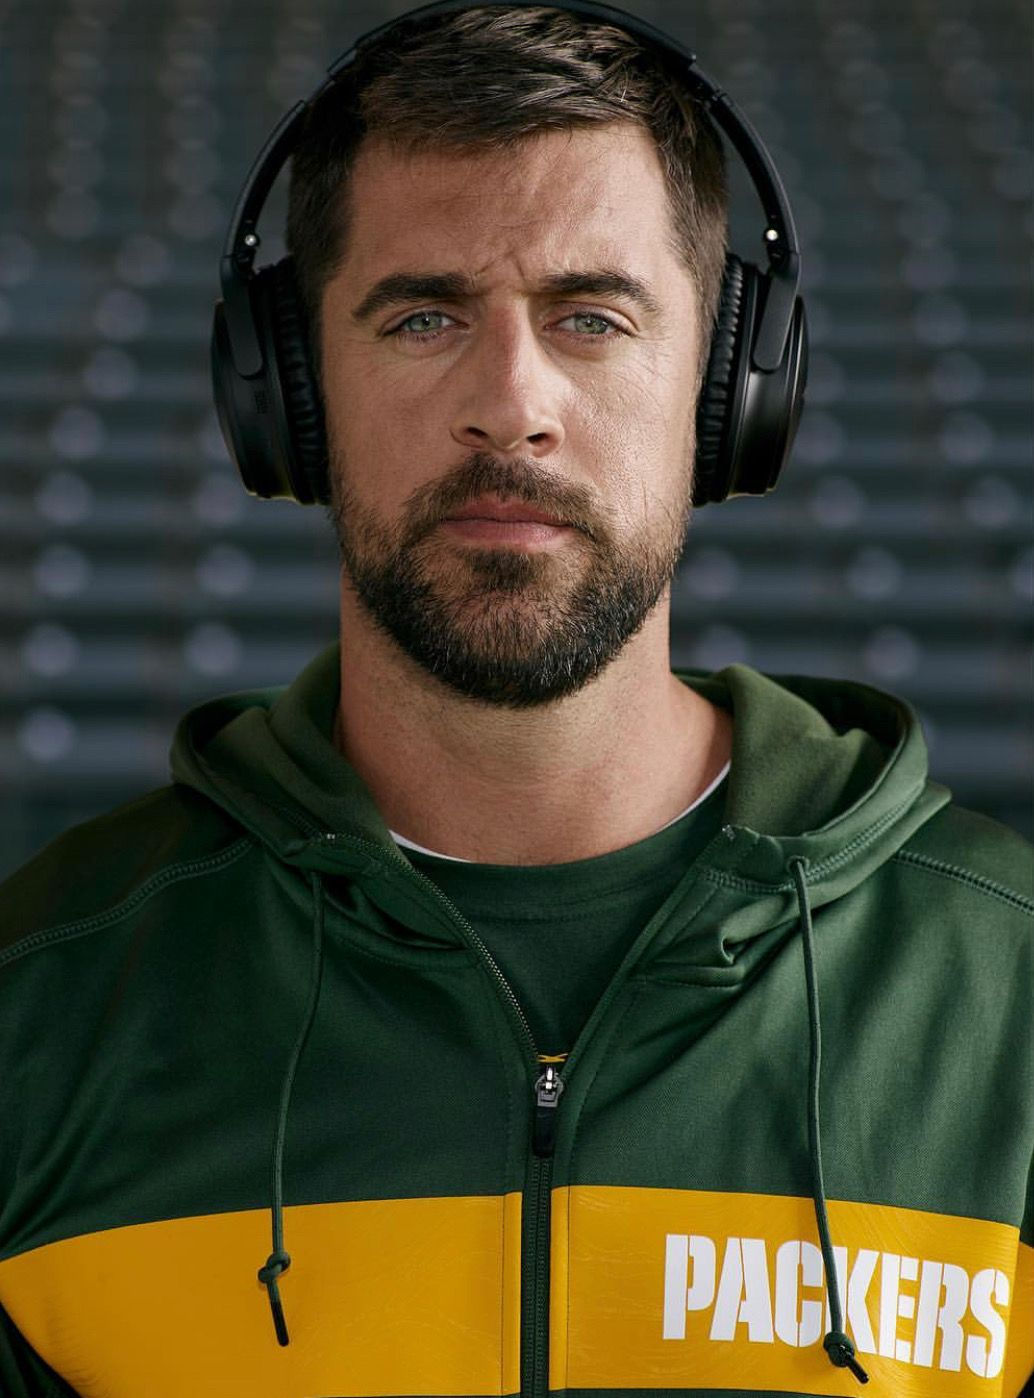 Repost By Pulseroll The Leaders In Vibrating Training Recovery Products Https Pulseroll Com Green Bay Packers Green Bay Packers Football Aaron Rodgers